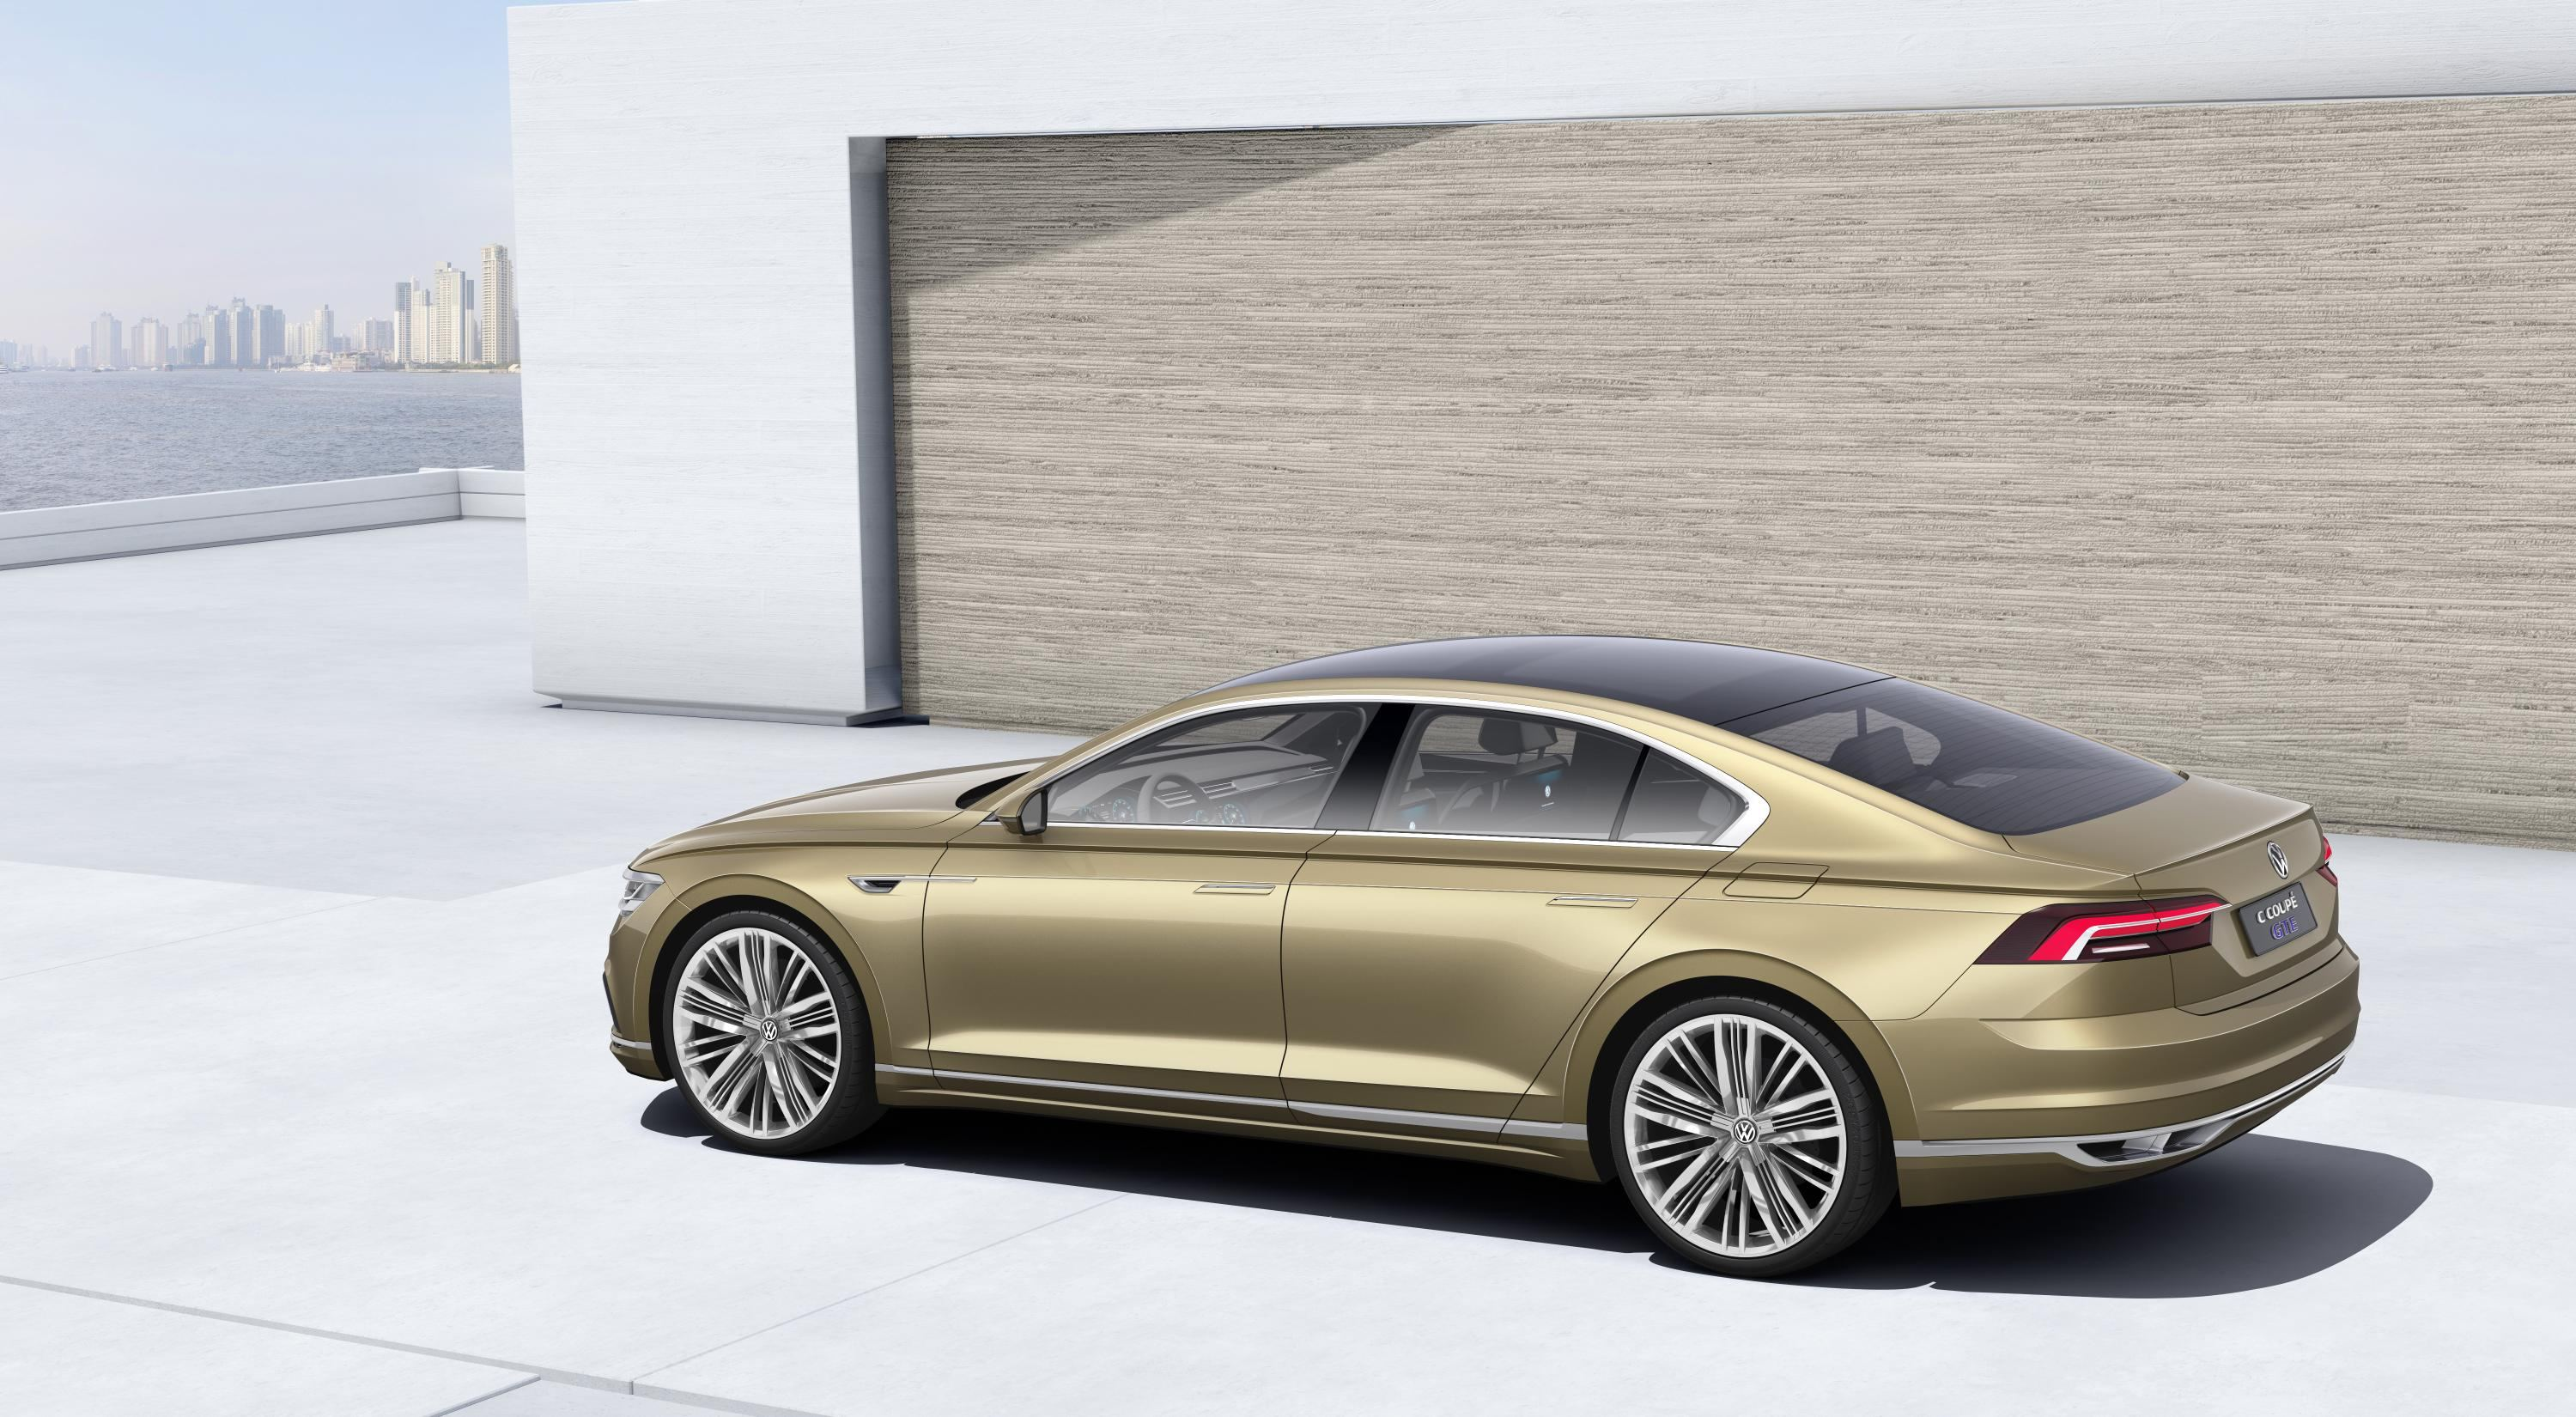 Vw Unveil Hybrid Powered Luxury Saloon In Shanghai